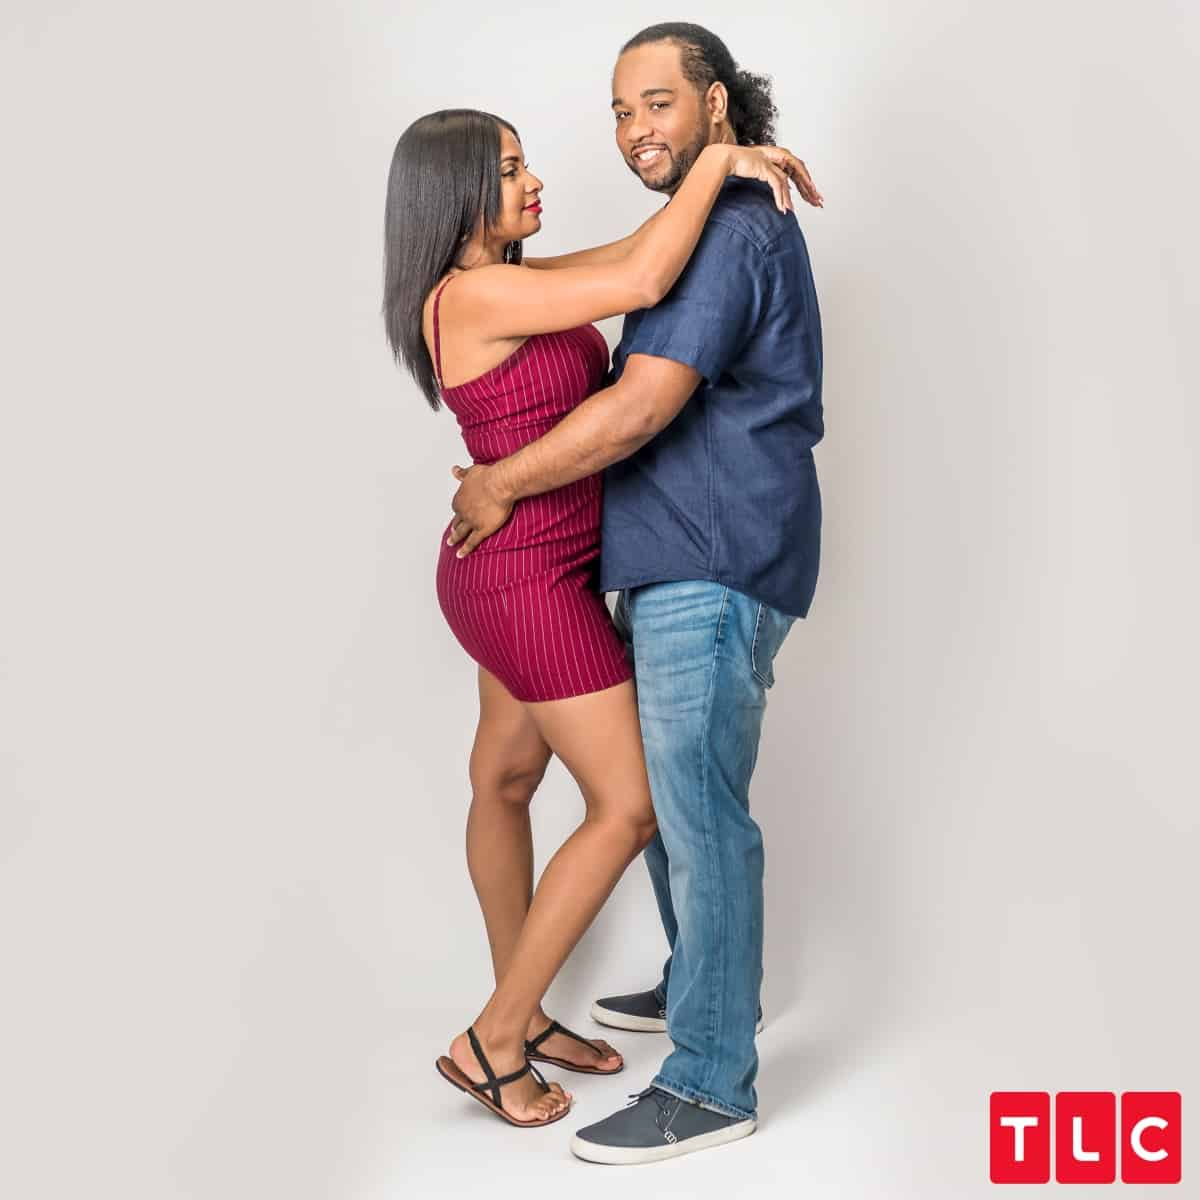 Anny and Robert on Season 7 of 90 Day Fiance